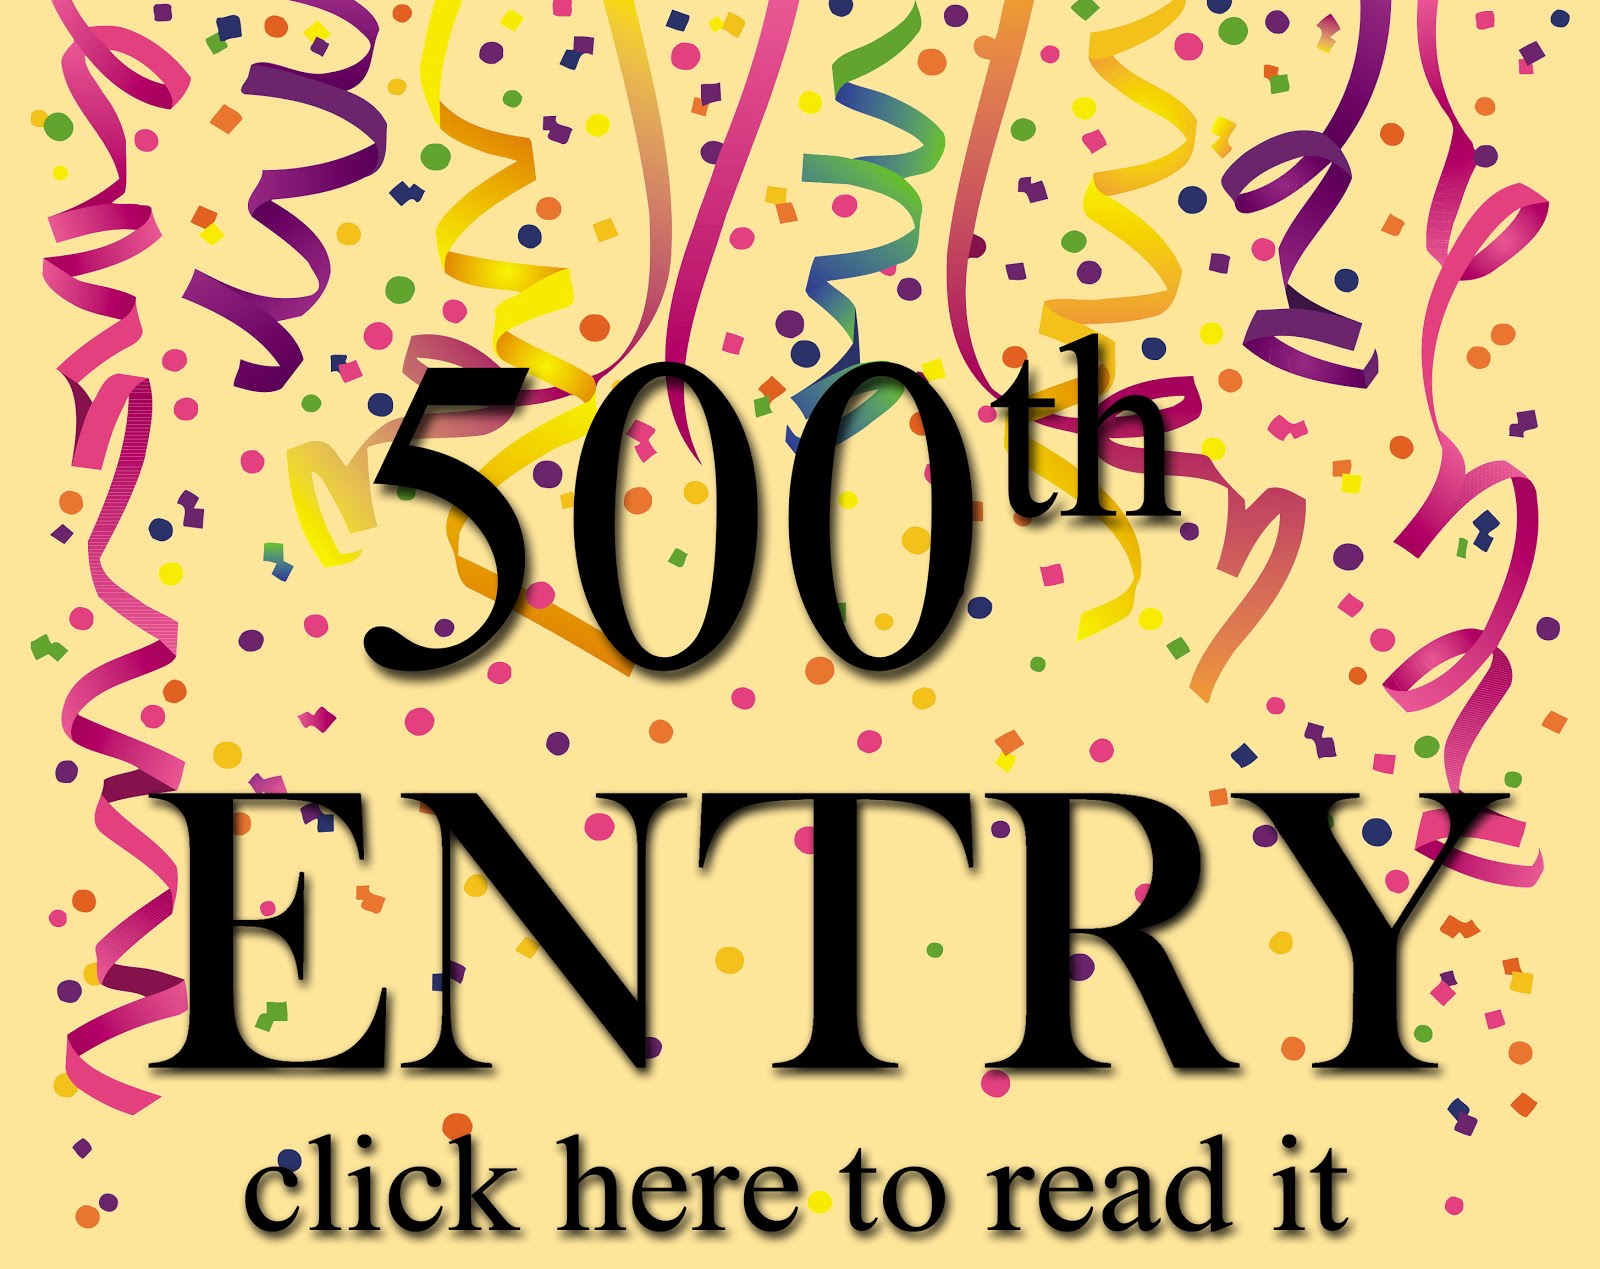 The 500th entry!